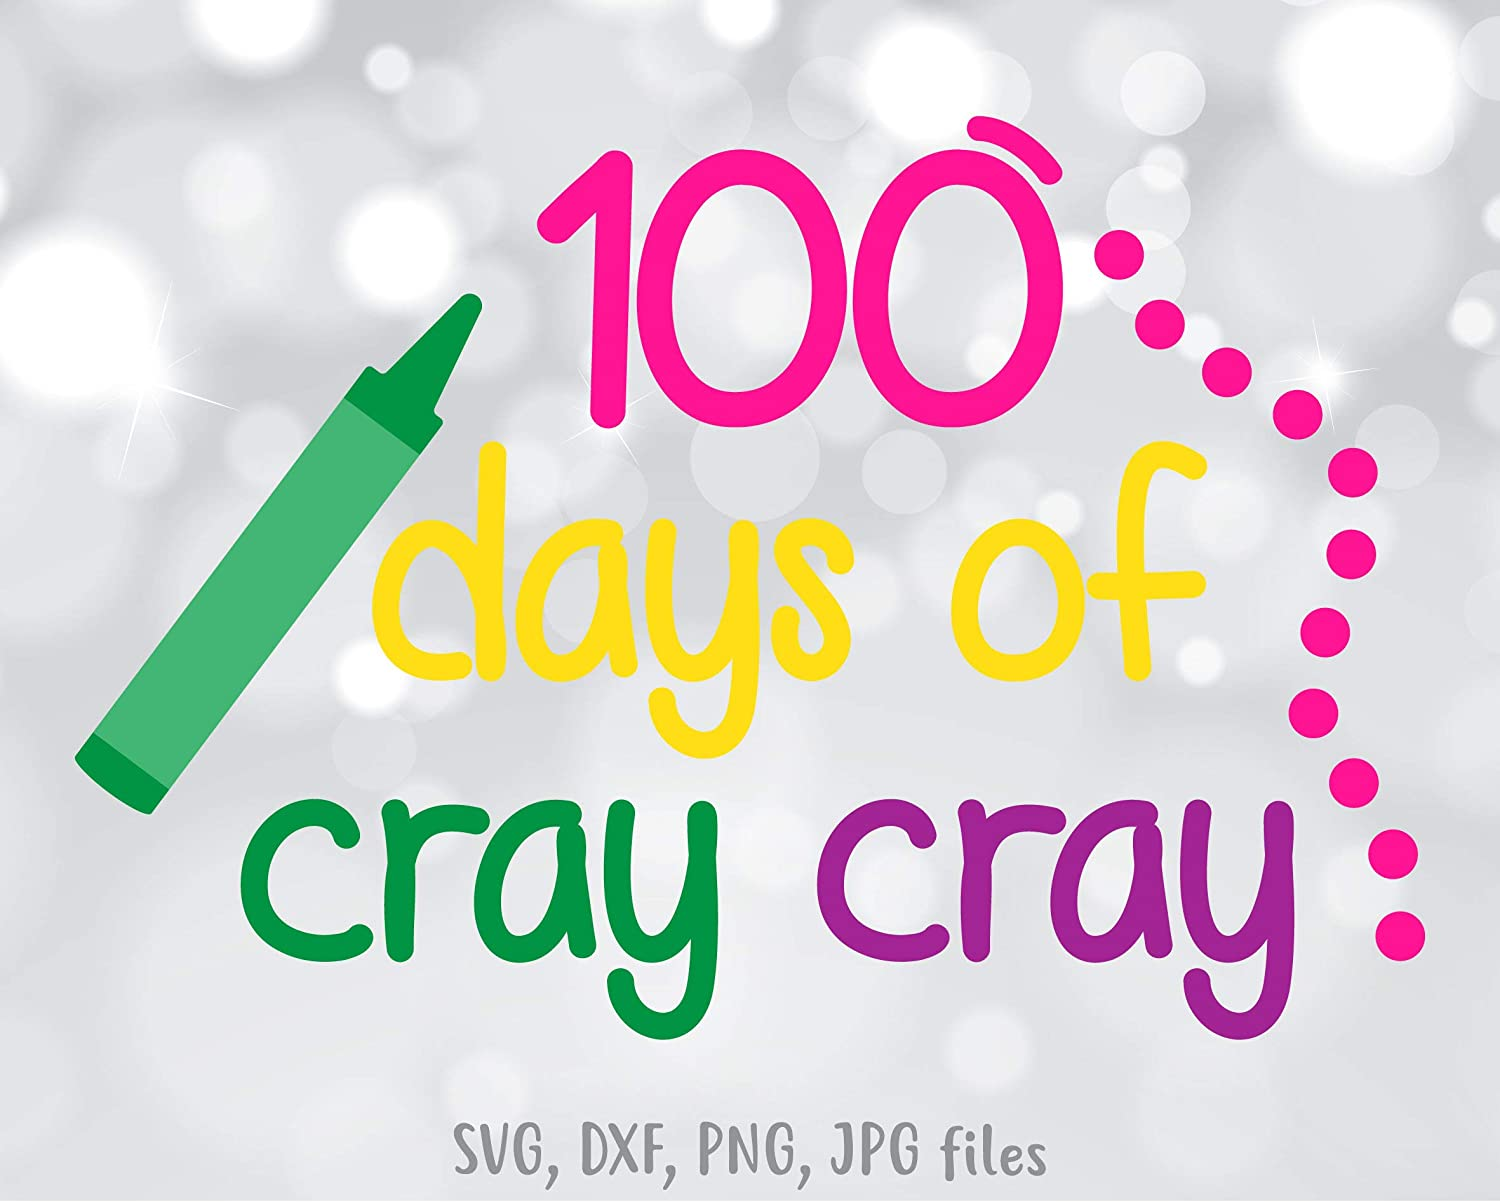 Stanley 100 Days Of Cray Cray Vinly Decal Cray Cray Vinly Decal 100 Days Vinly Decal 100 Days Crayon Design Vinly Decal Decal Sticker Amazon Ca Tools Home Improvement